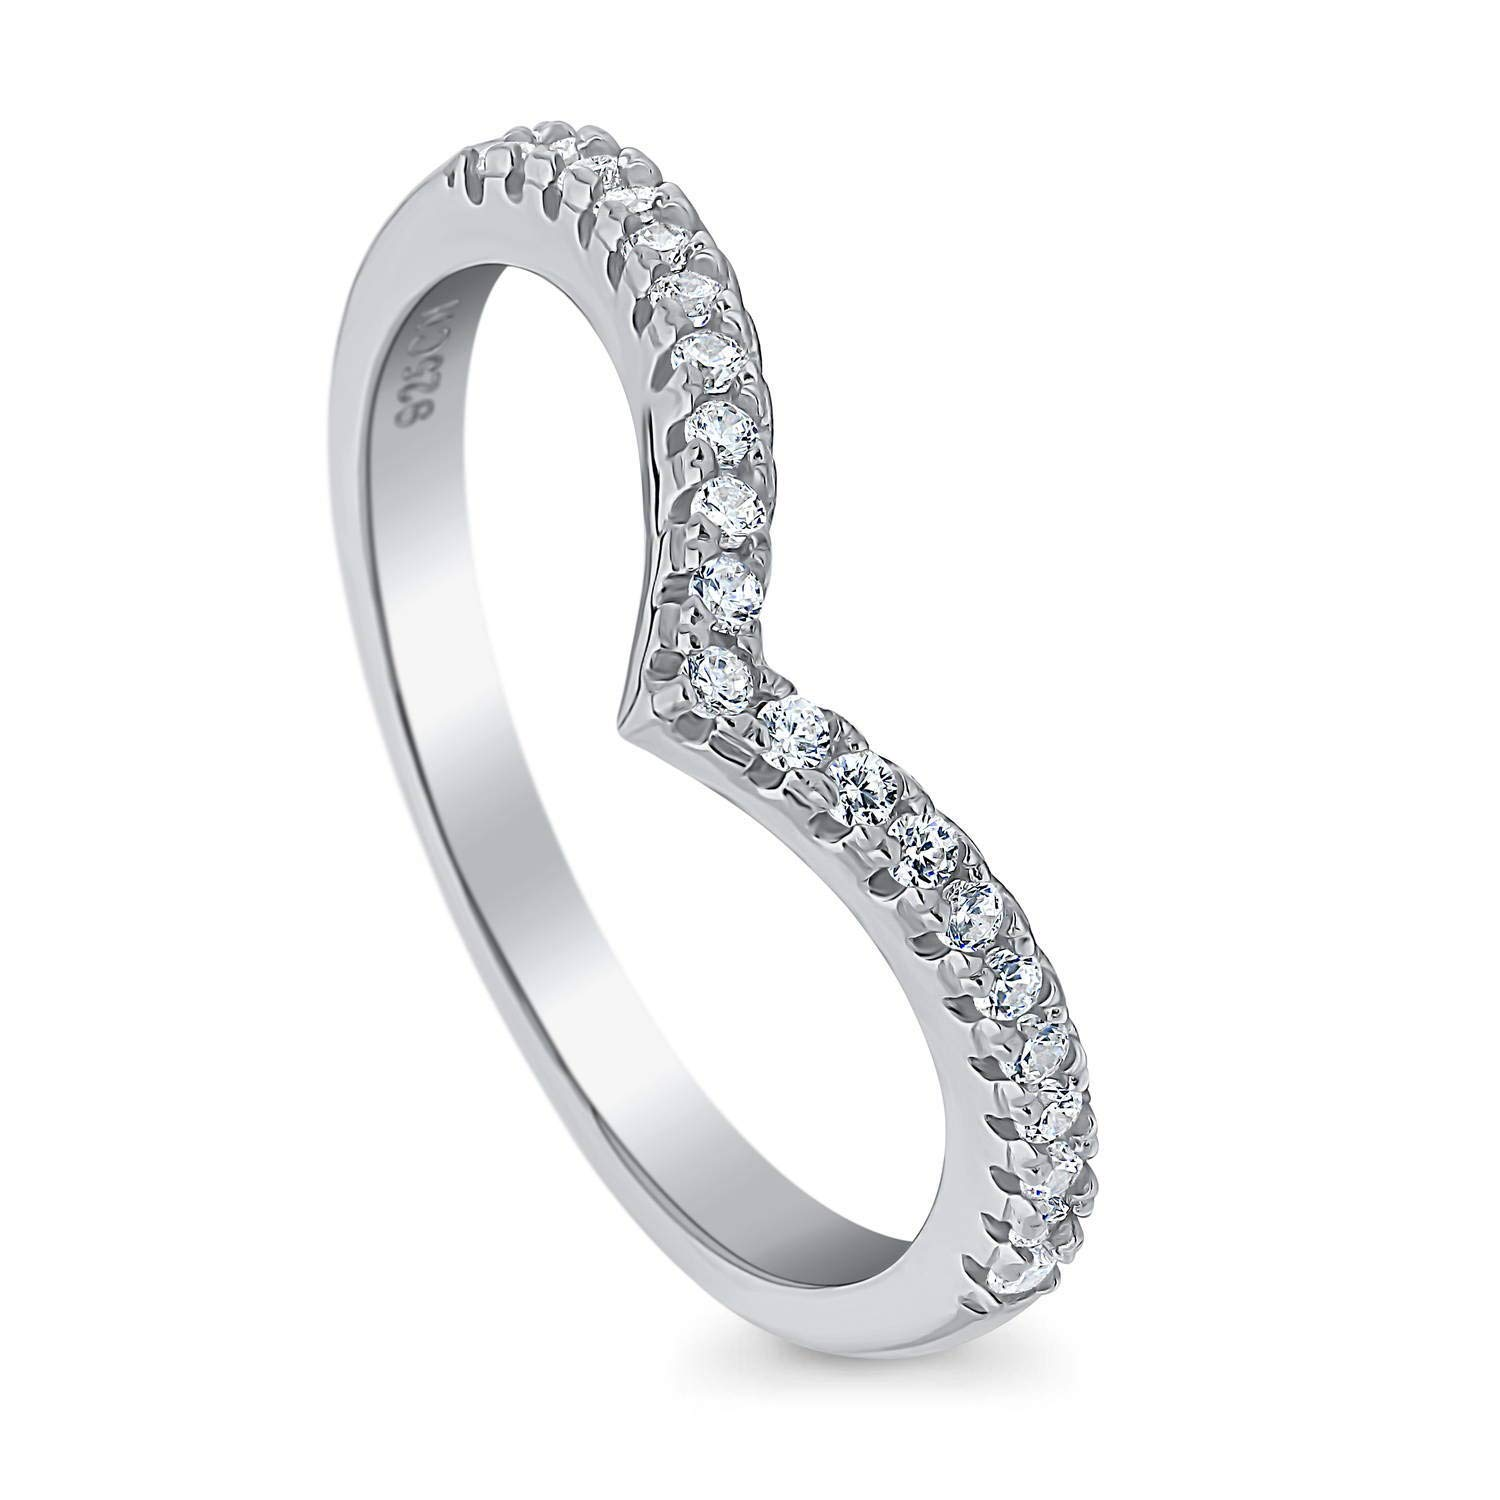 BERRICLE Rhodium Plated Sterling Silver Cubic Zirconia CZ V Shaped Wedding Curved Half Eternity Band Ring